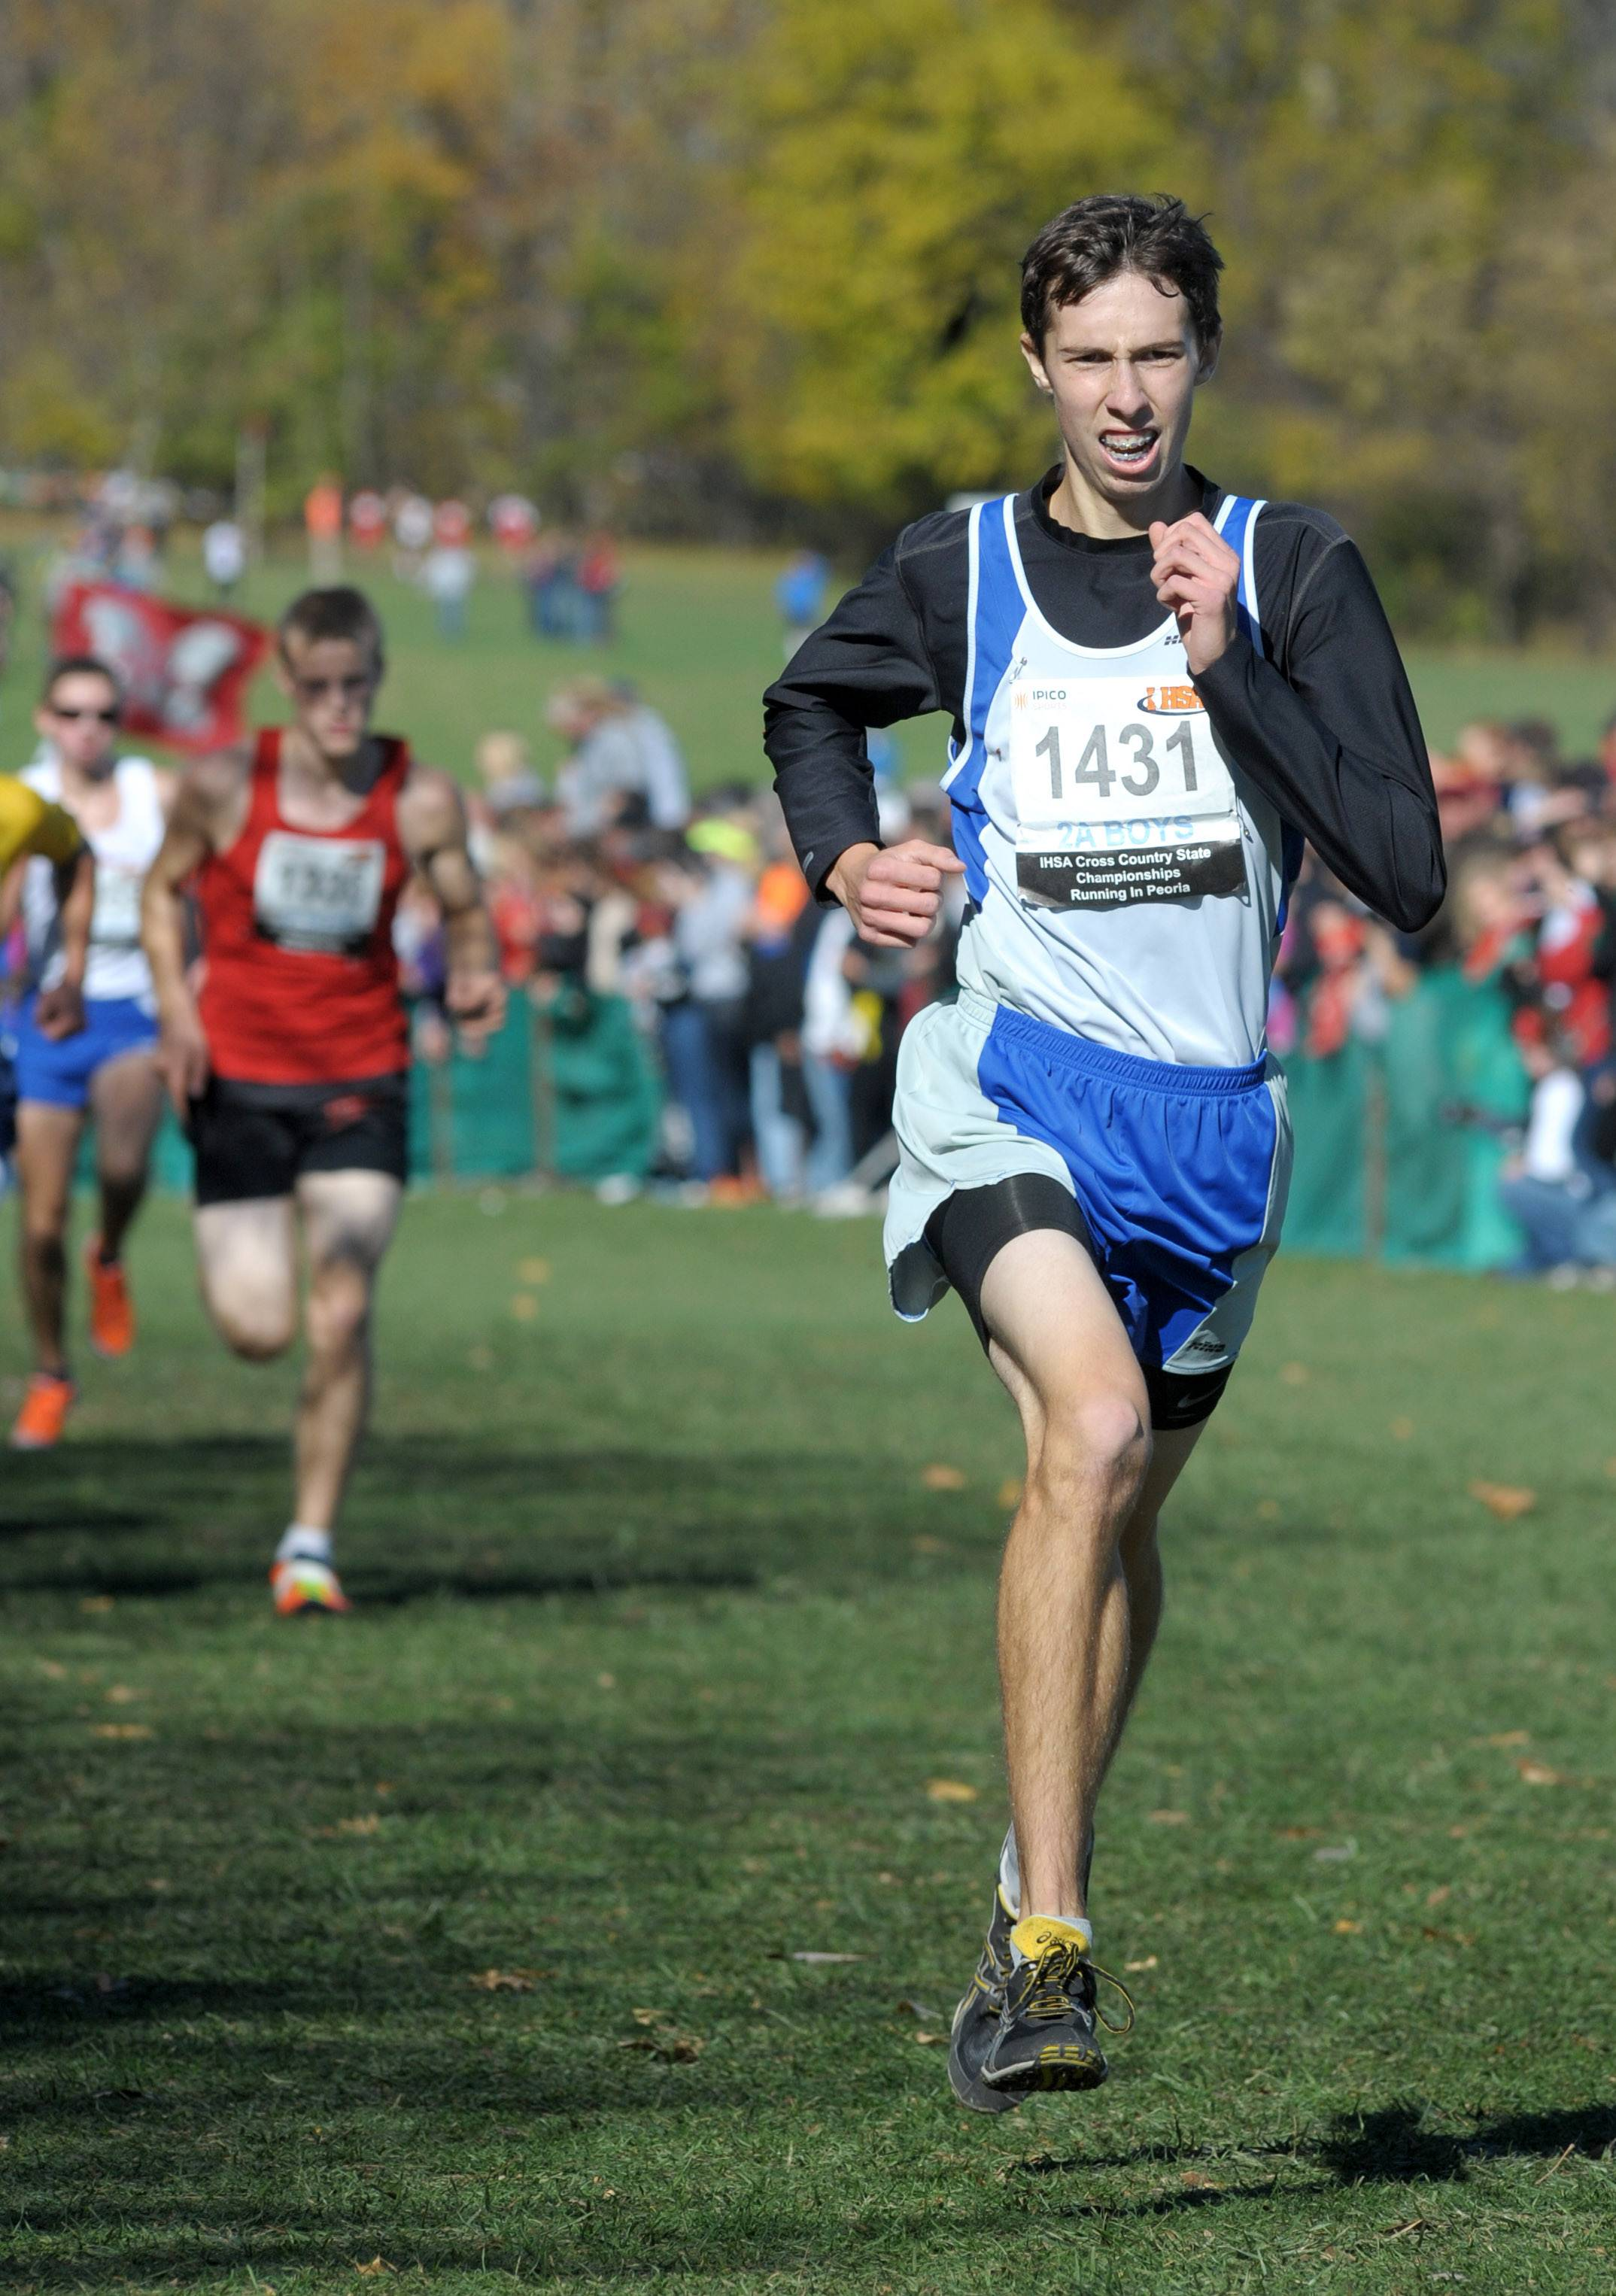 Burlington Central's Clay Musial is a returning state qualifier who finished in 26th place in the Class 2A state finals at Detweiller Park in Peoria last season.